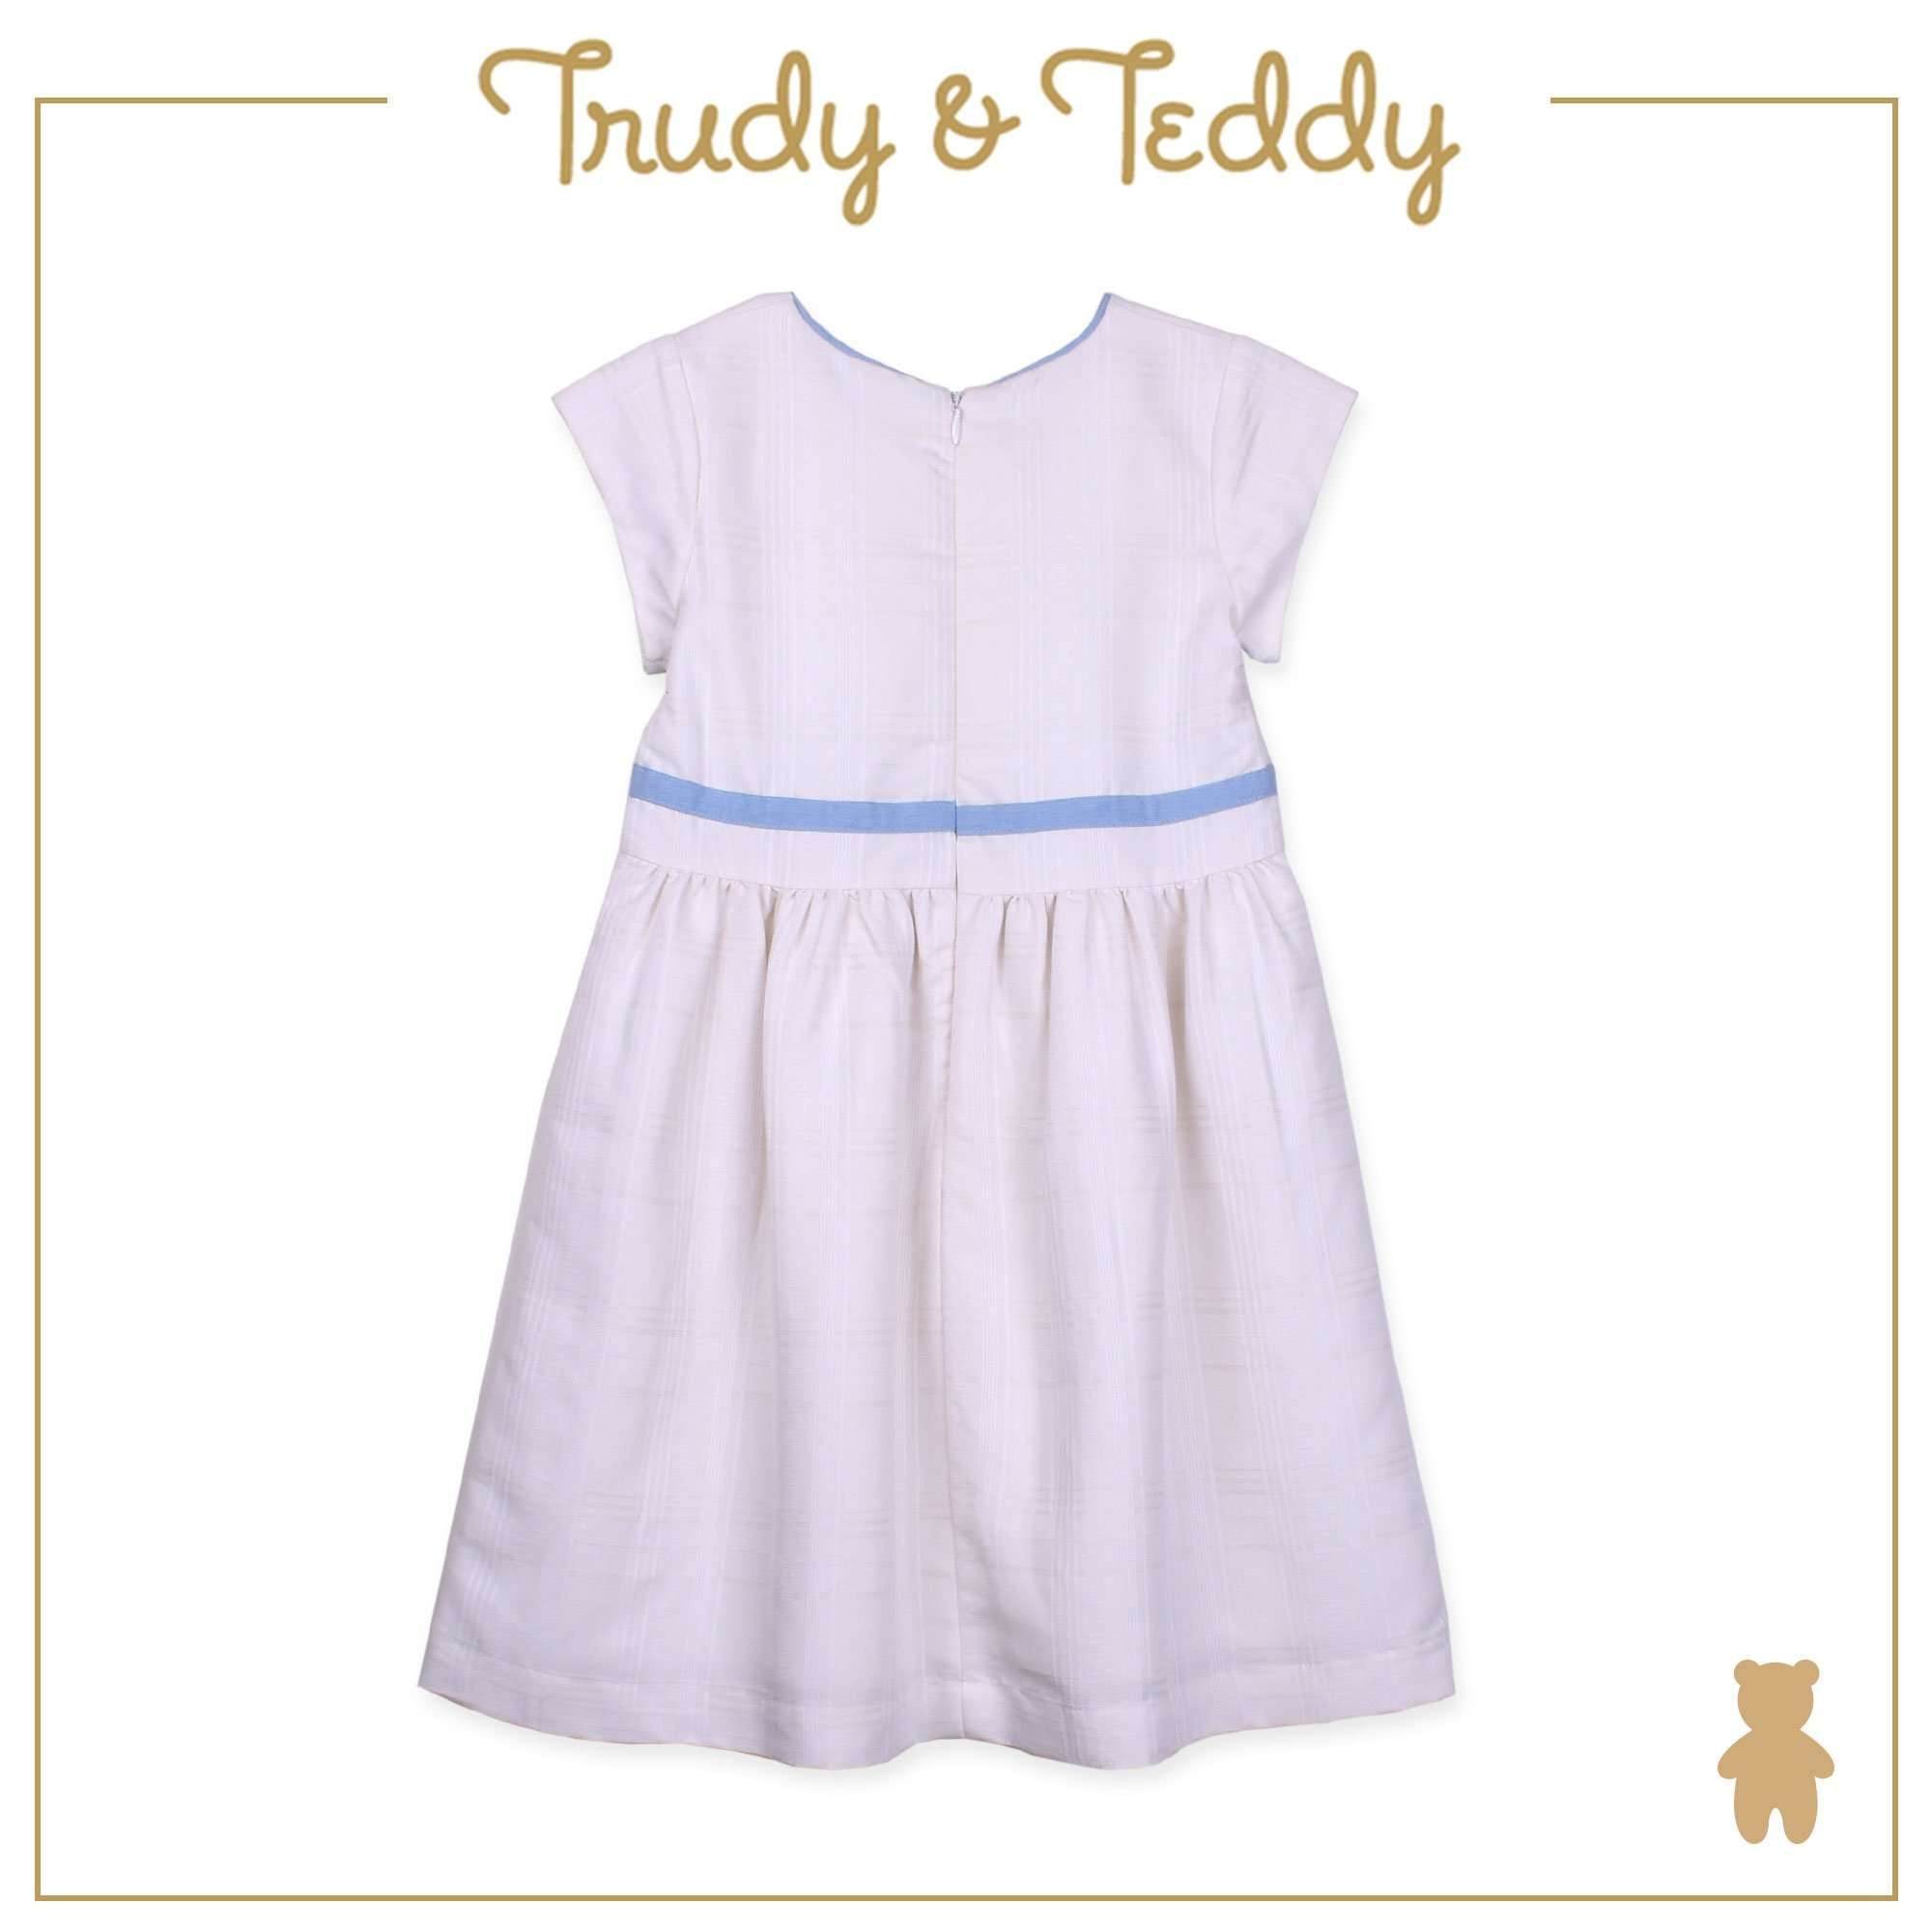 Trudy & Teddy Baby to Kid Girl Short Sleeve Dress - White T925002-3106-W5 : Buy Trudy & Teddy online at CMG.MY